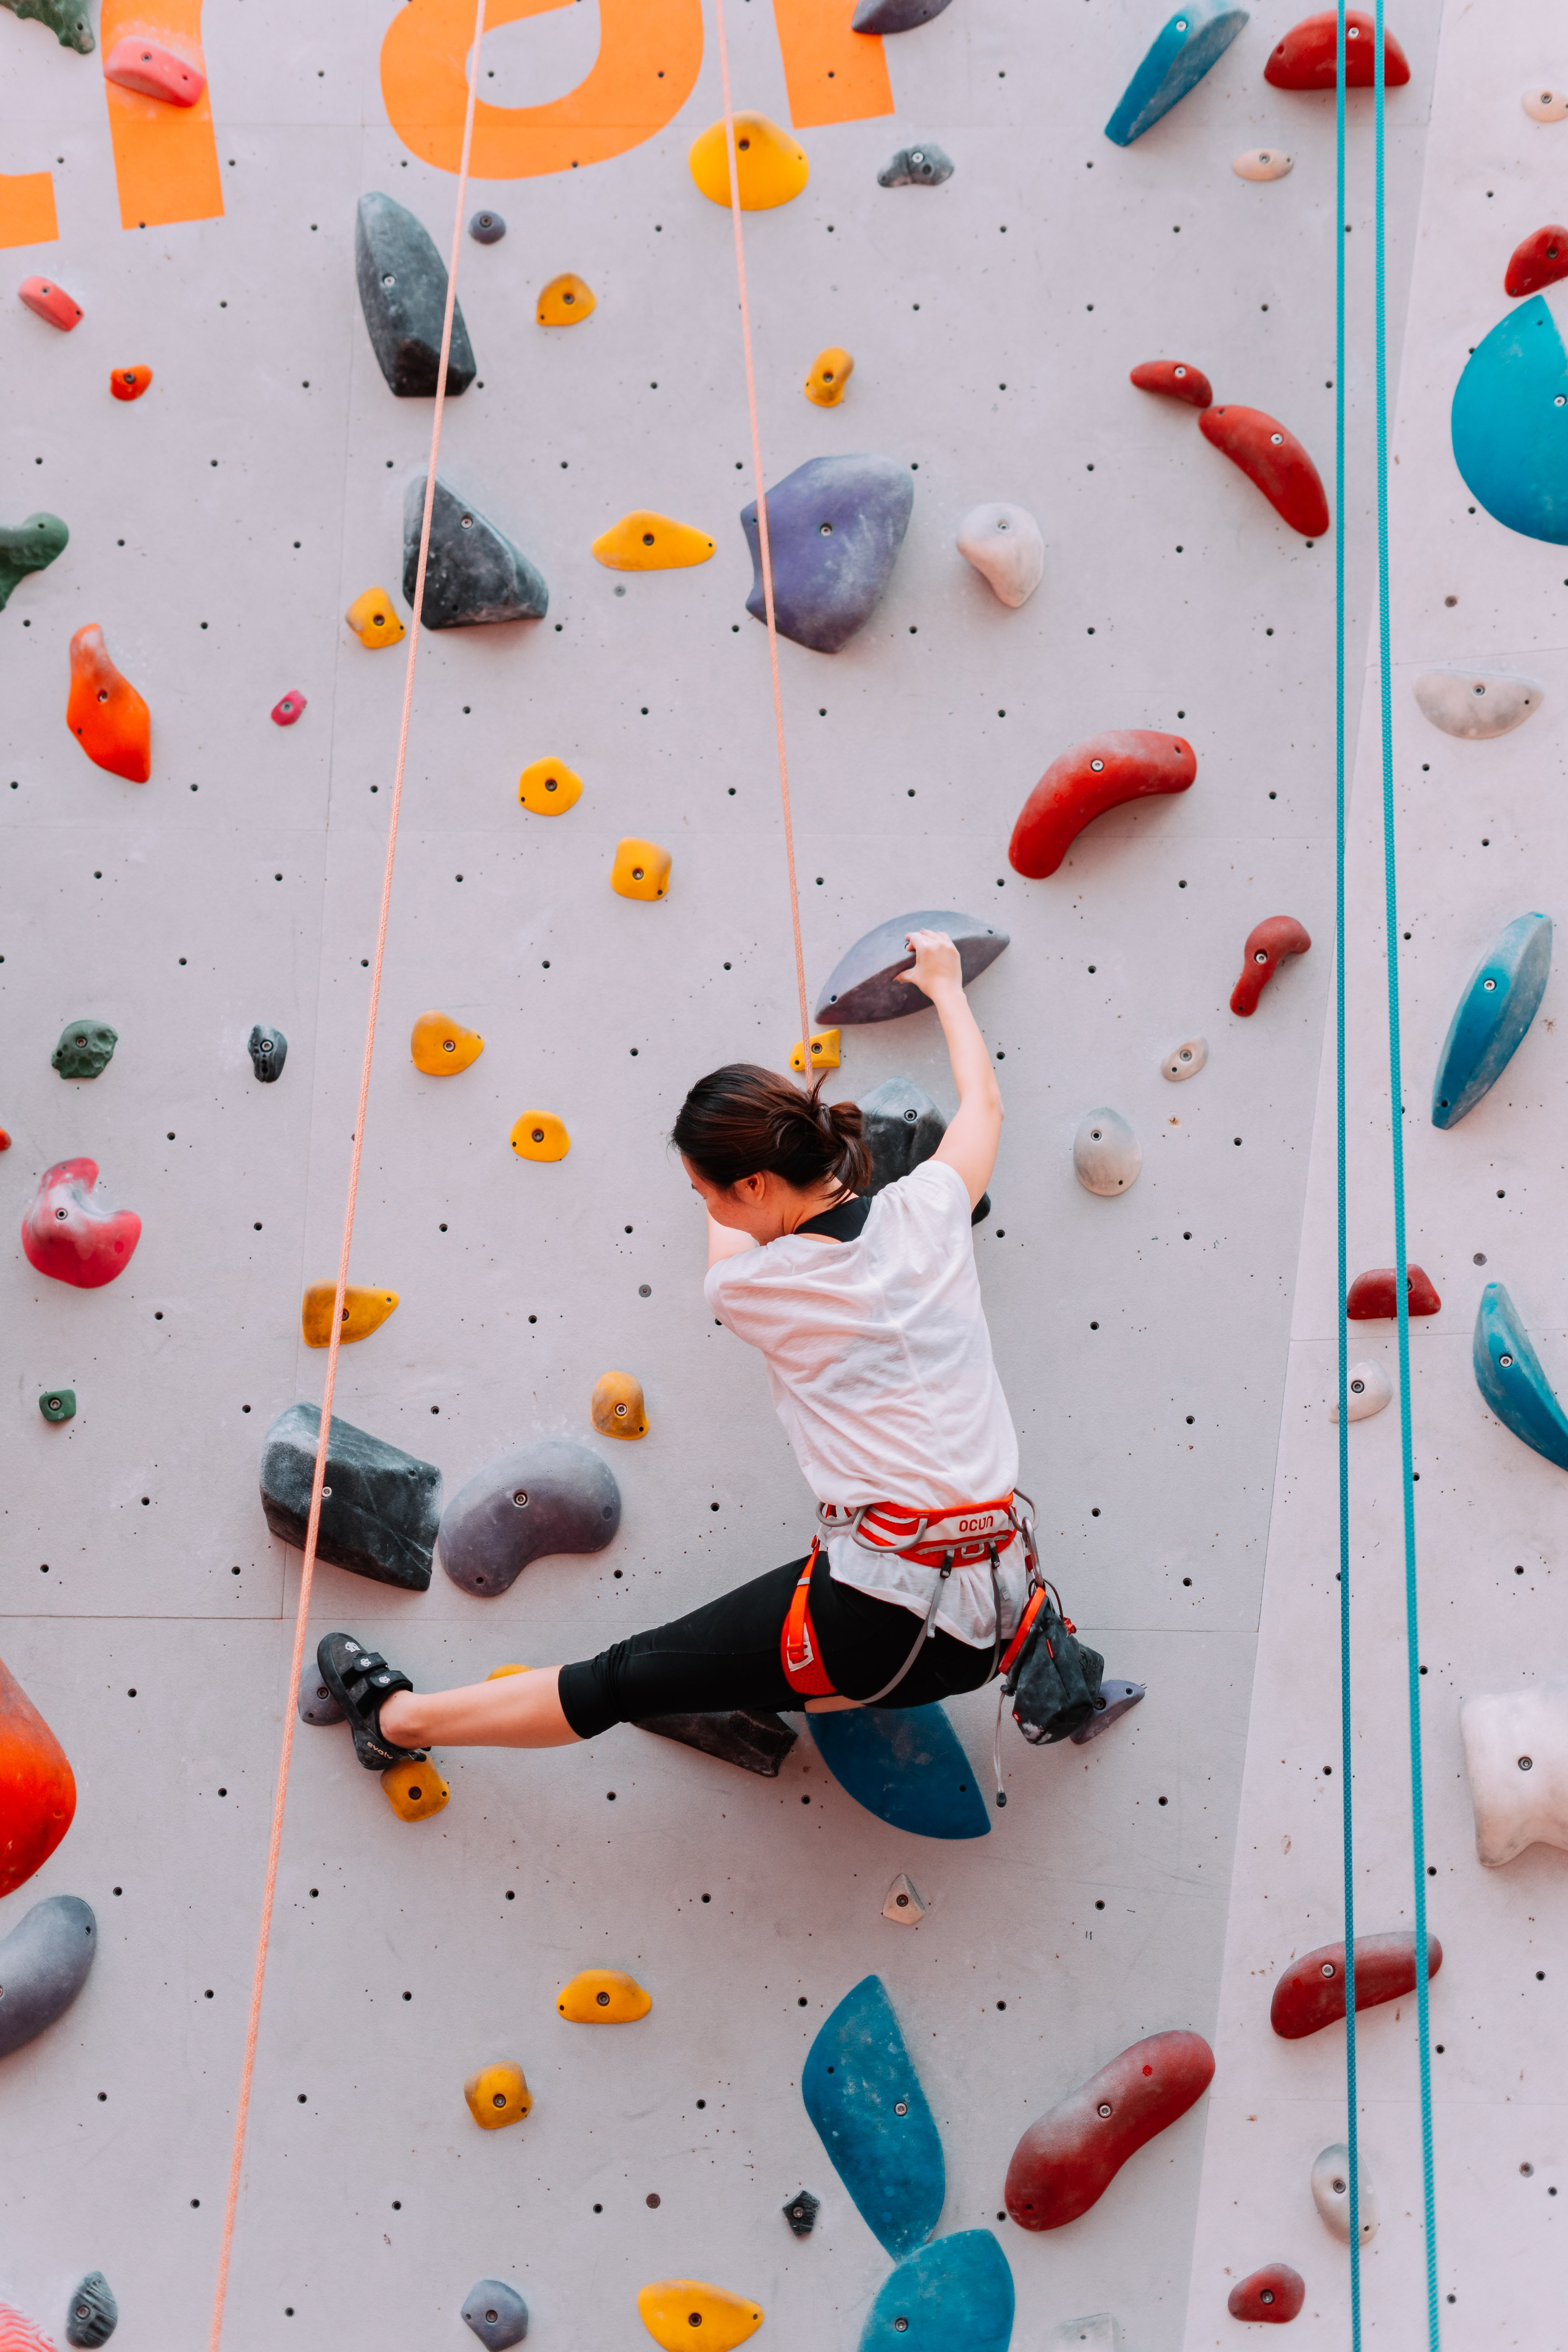 woman climbing on wall during daytime